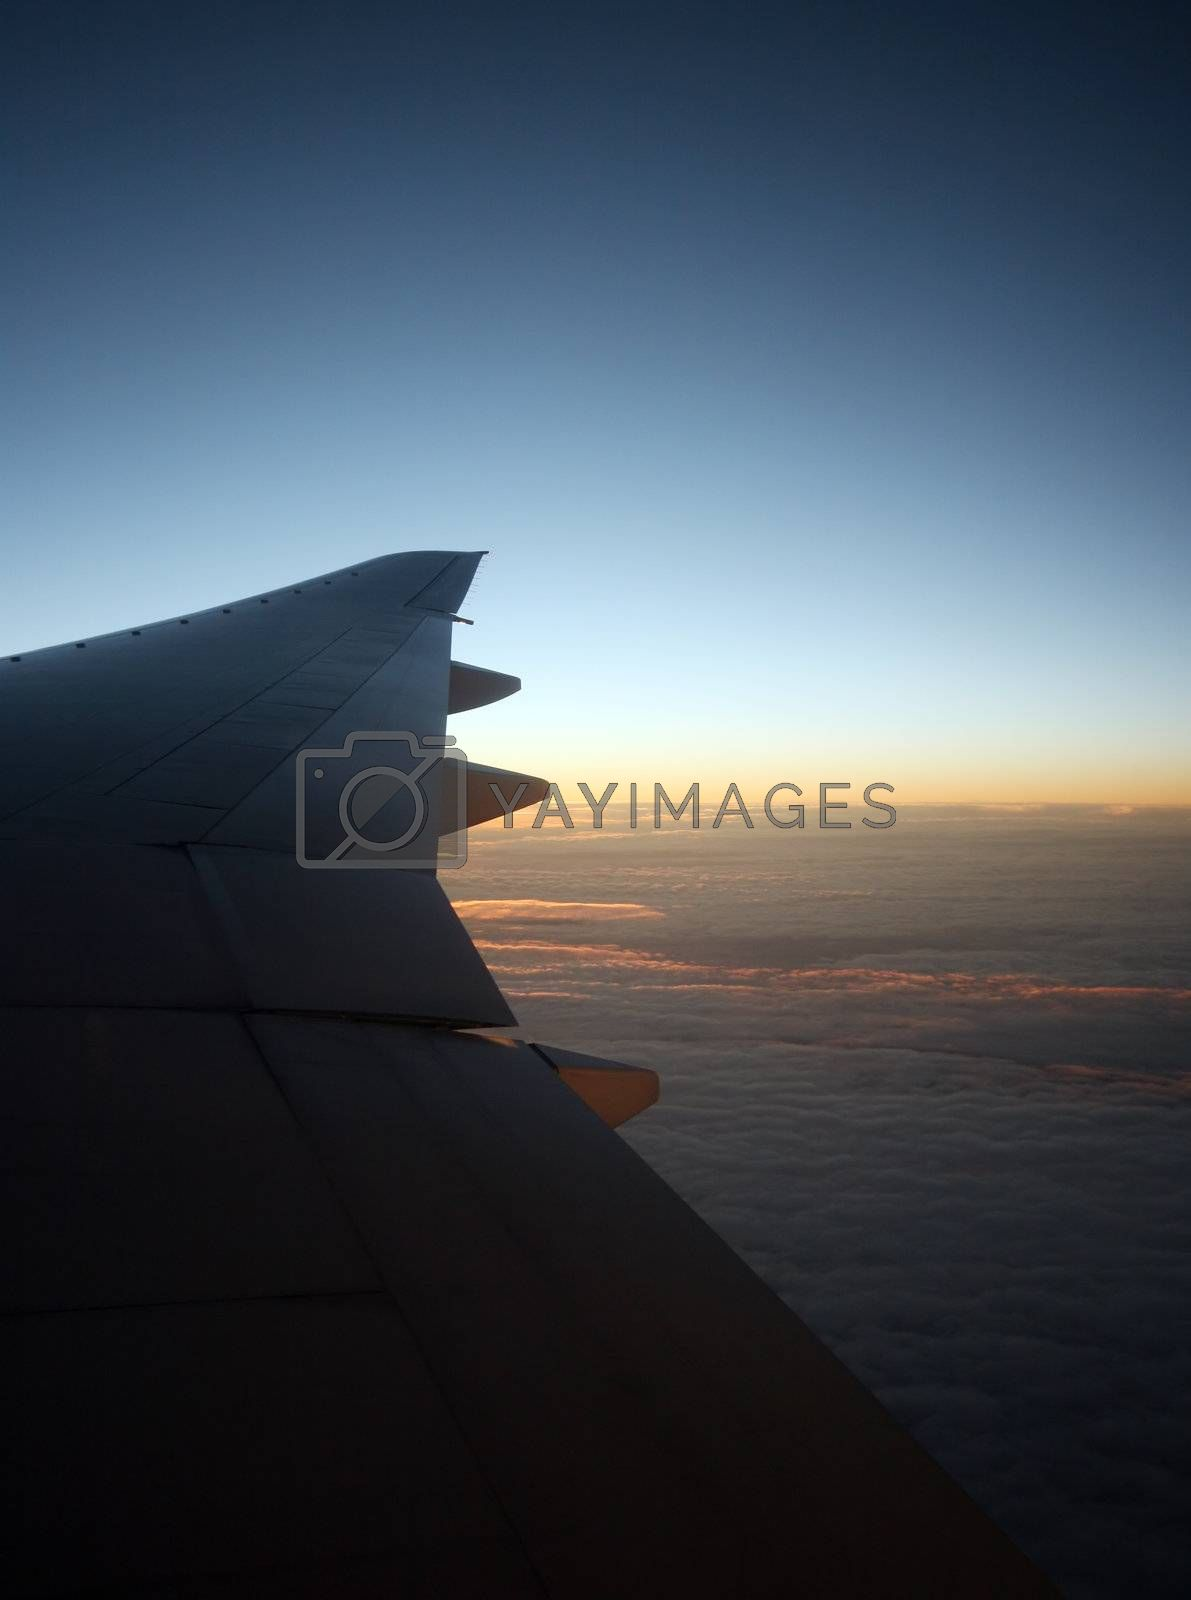 Wing of the plane on a background of clouds